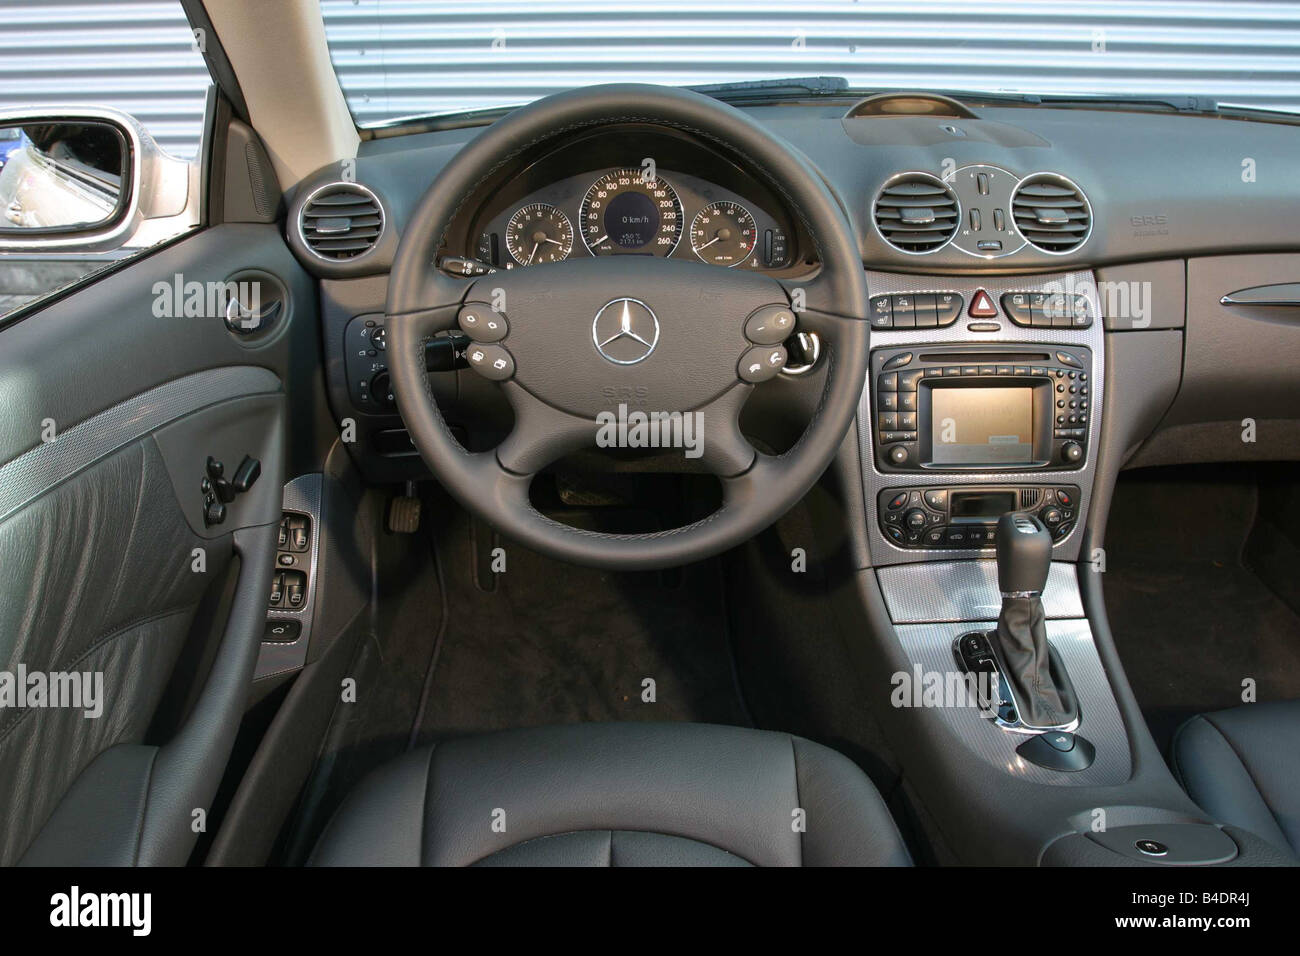 Car Mercedes Clk 320 Convertible Model Year 2003 Silver Stock Photo Royalty Free Image